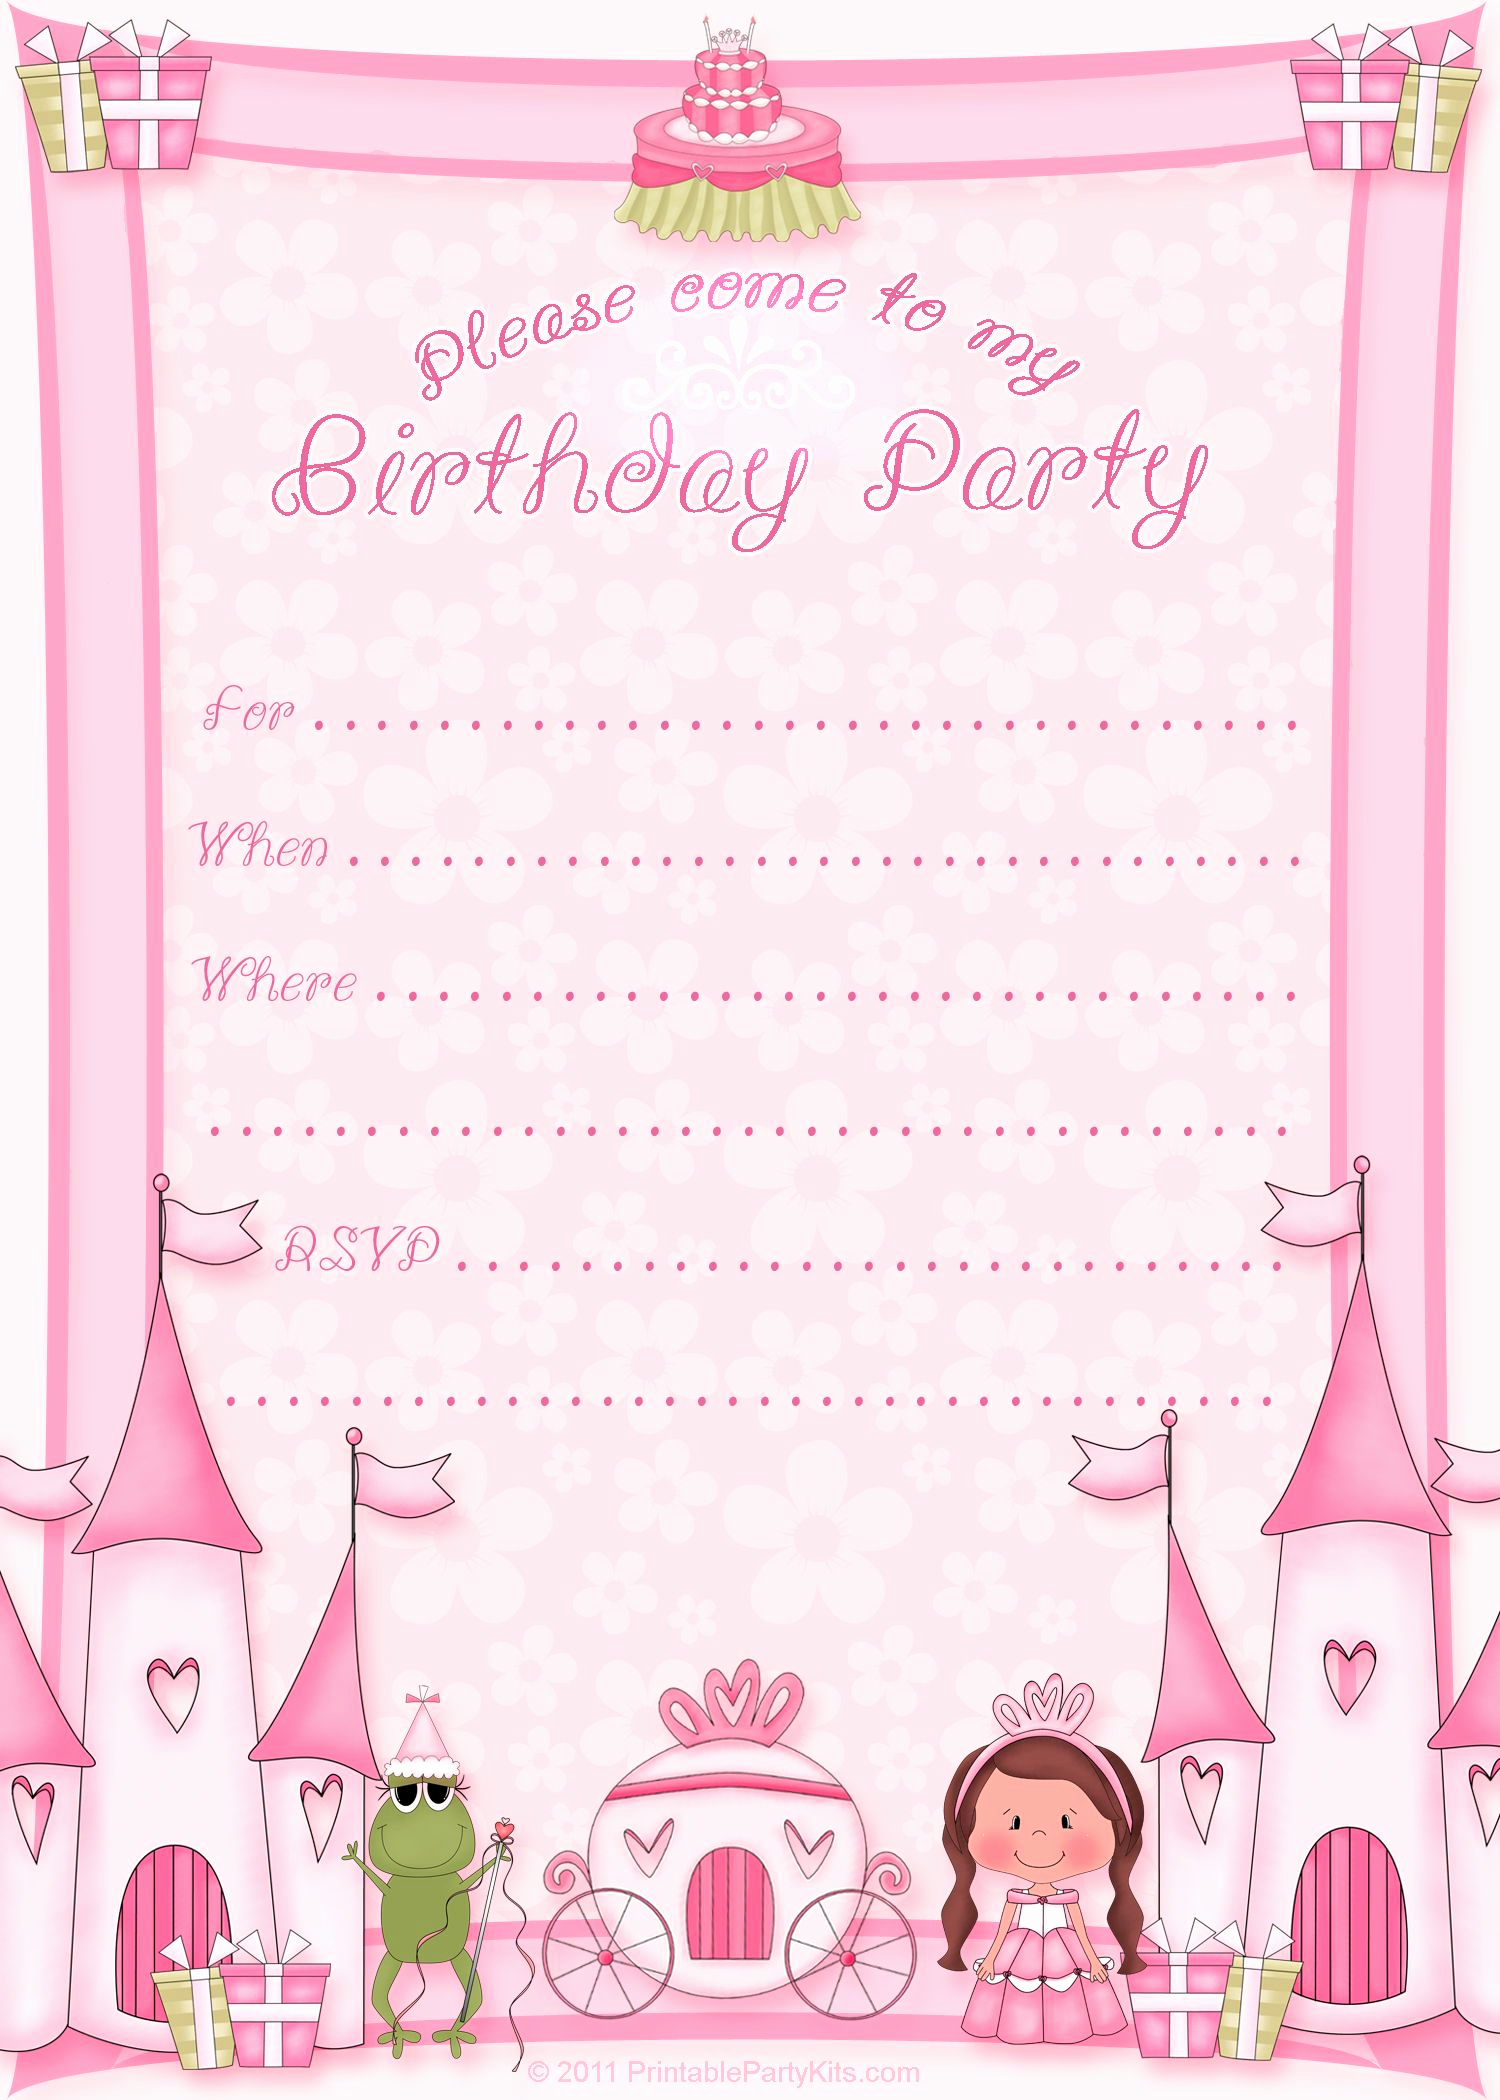 Birthday Invitation Card Sample Lovely Free Printable Invitation Pinned for Kidfolio the